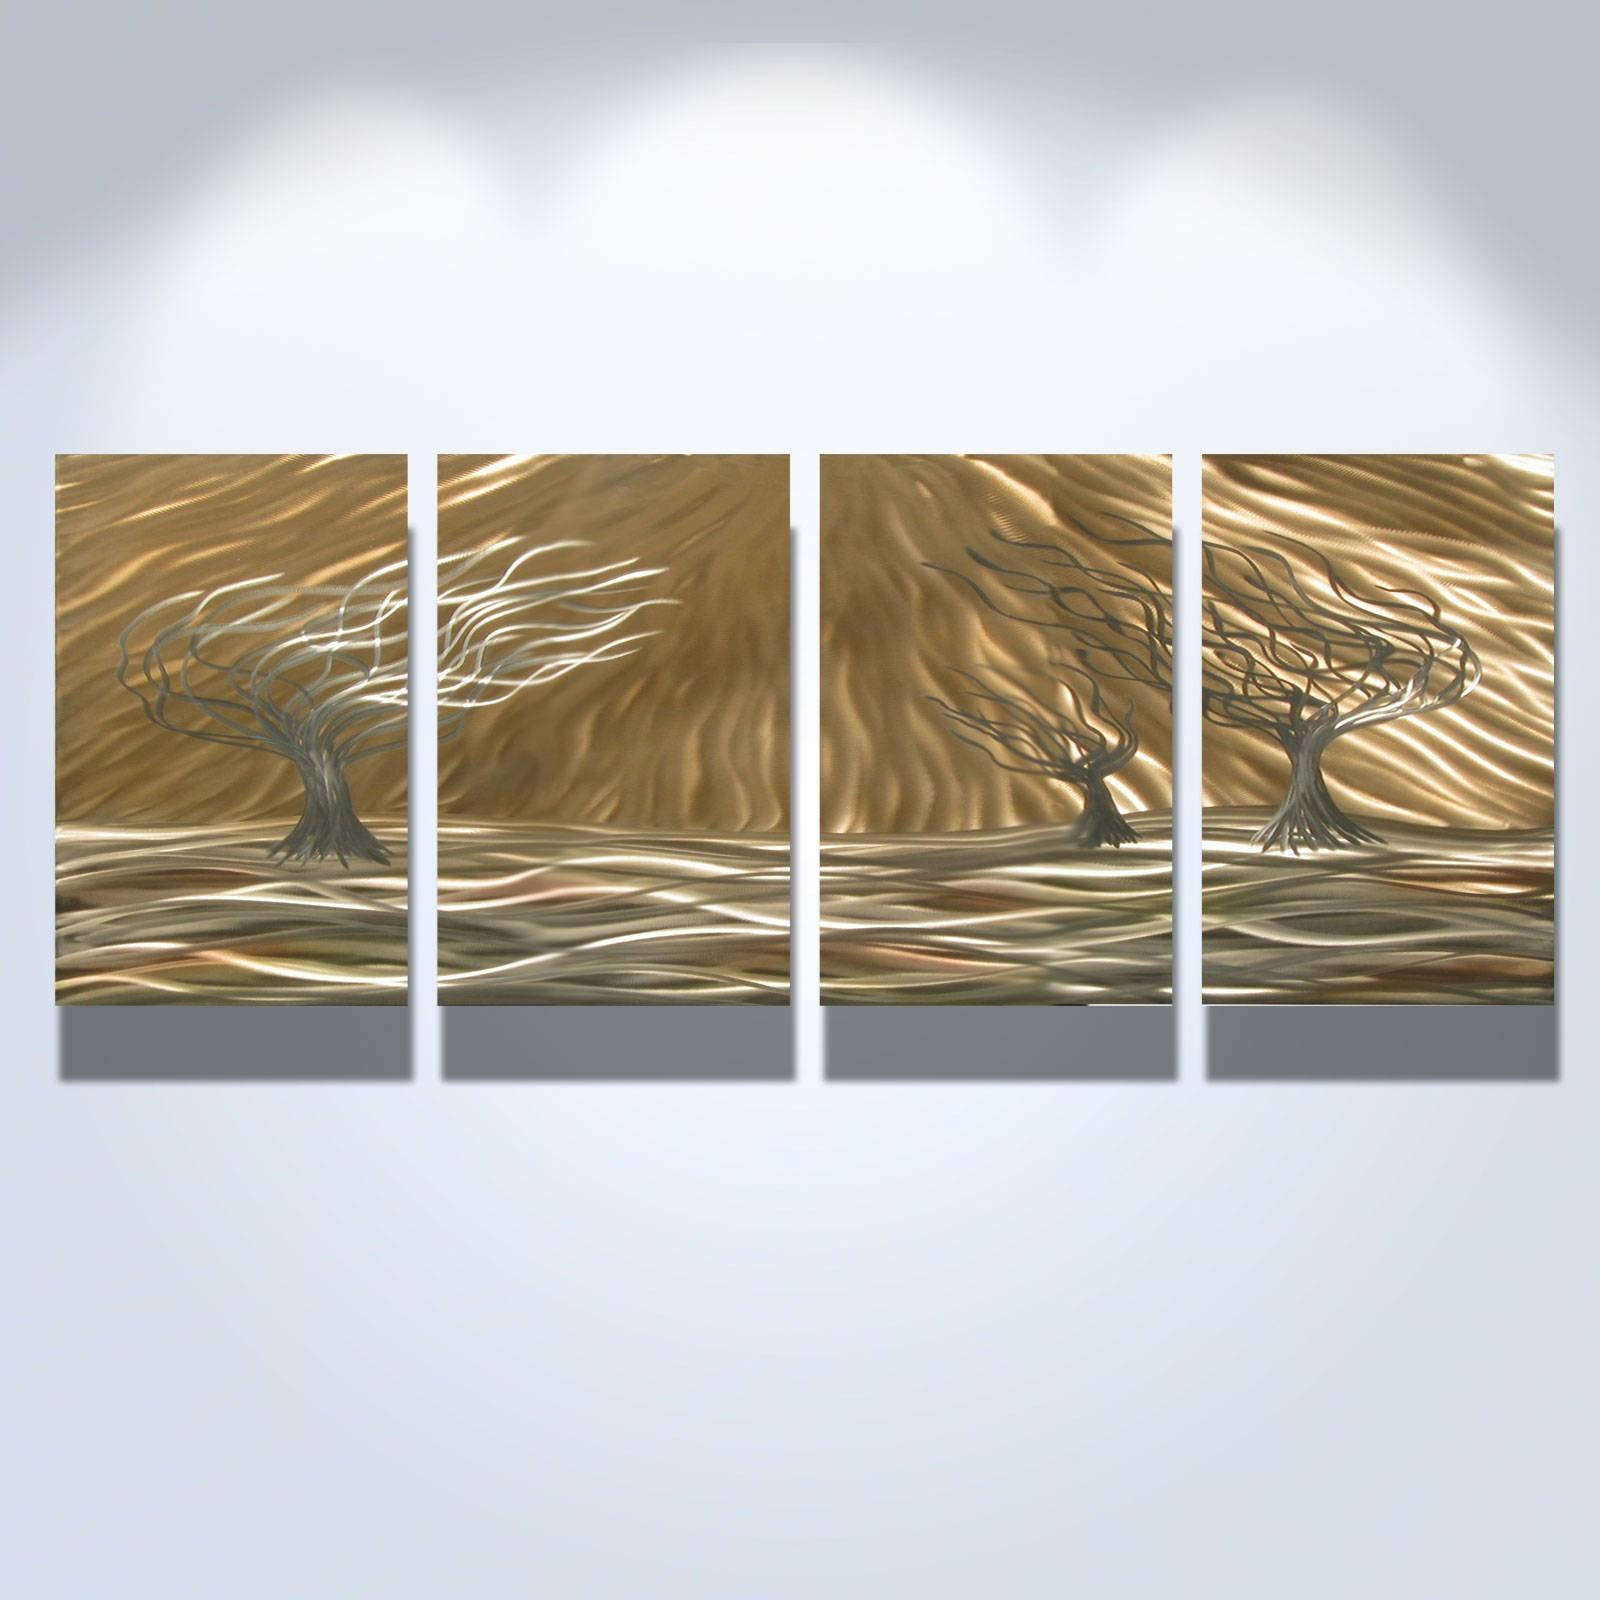 3 Trees 4 Panel – Abstract Metal Wall Art Contemporary Modern Inside Most Recently Released Contemporary Metal Wall Art (View 11 of 20)